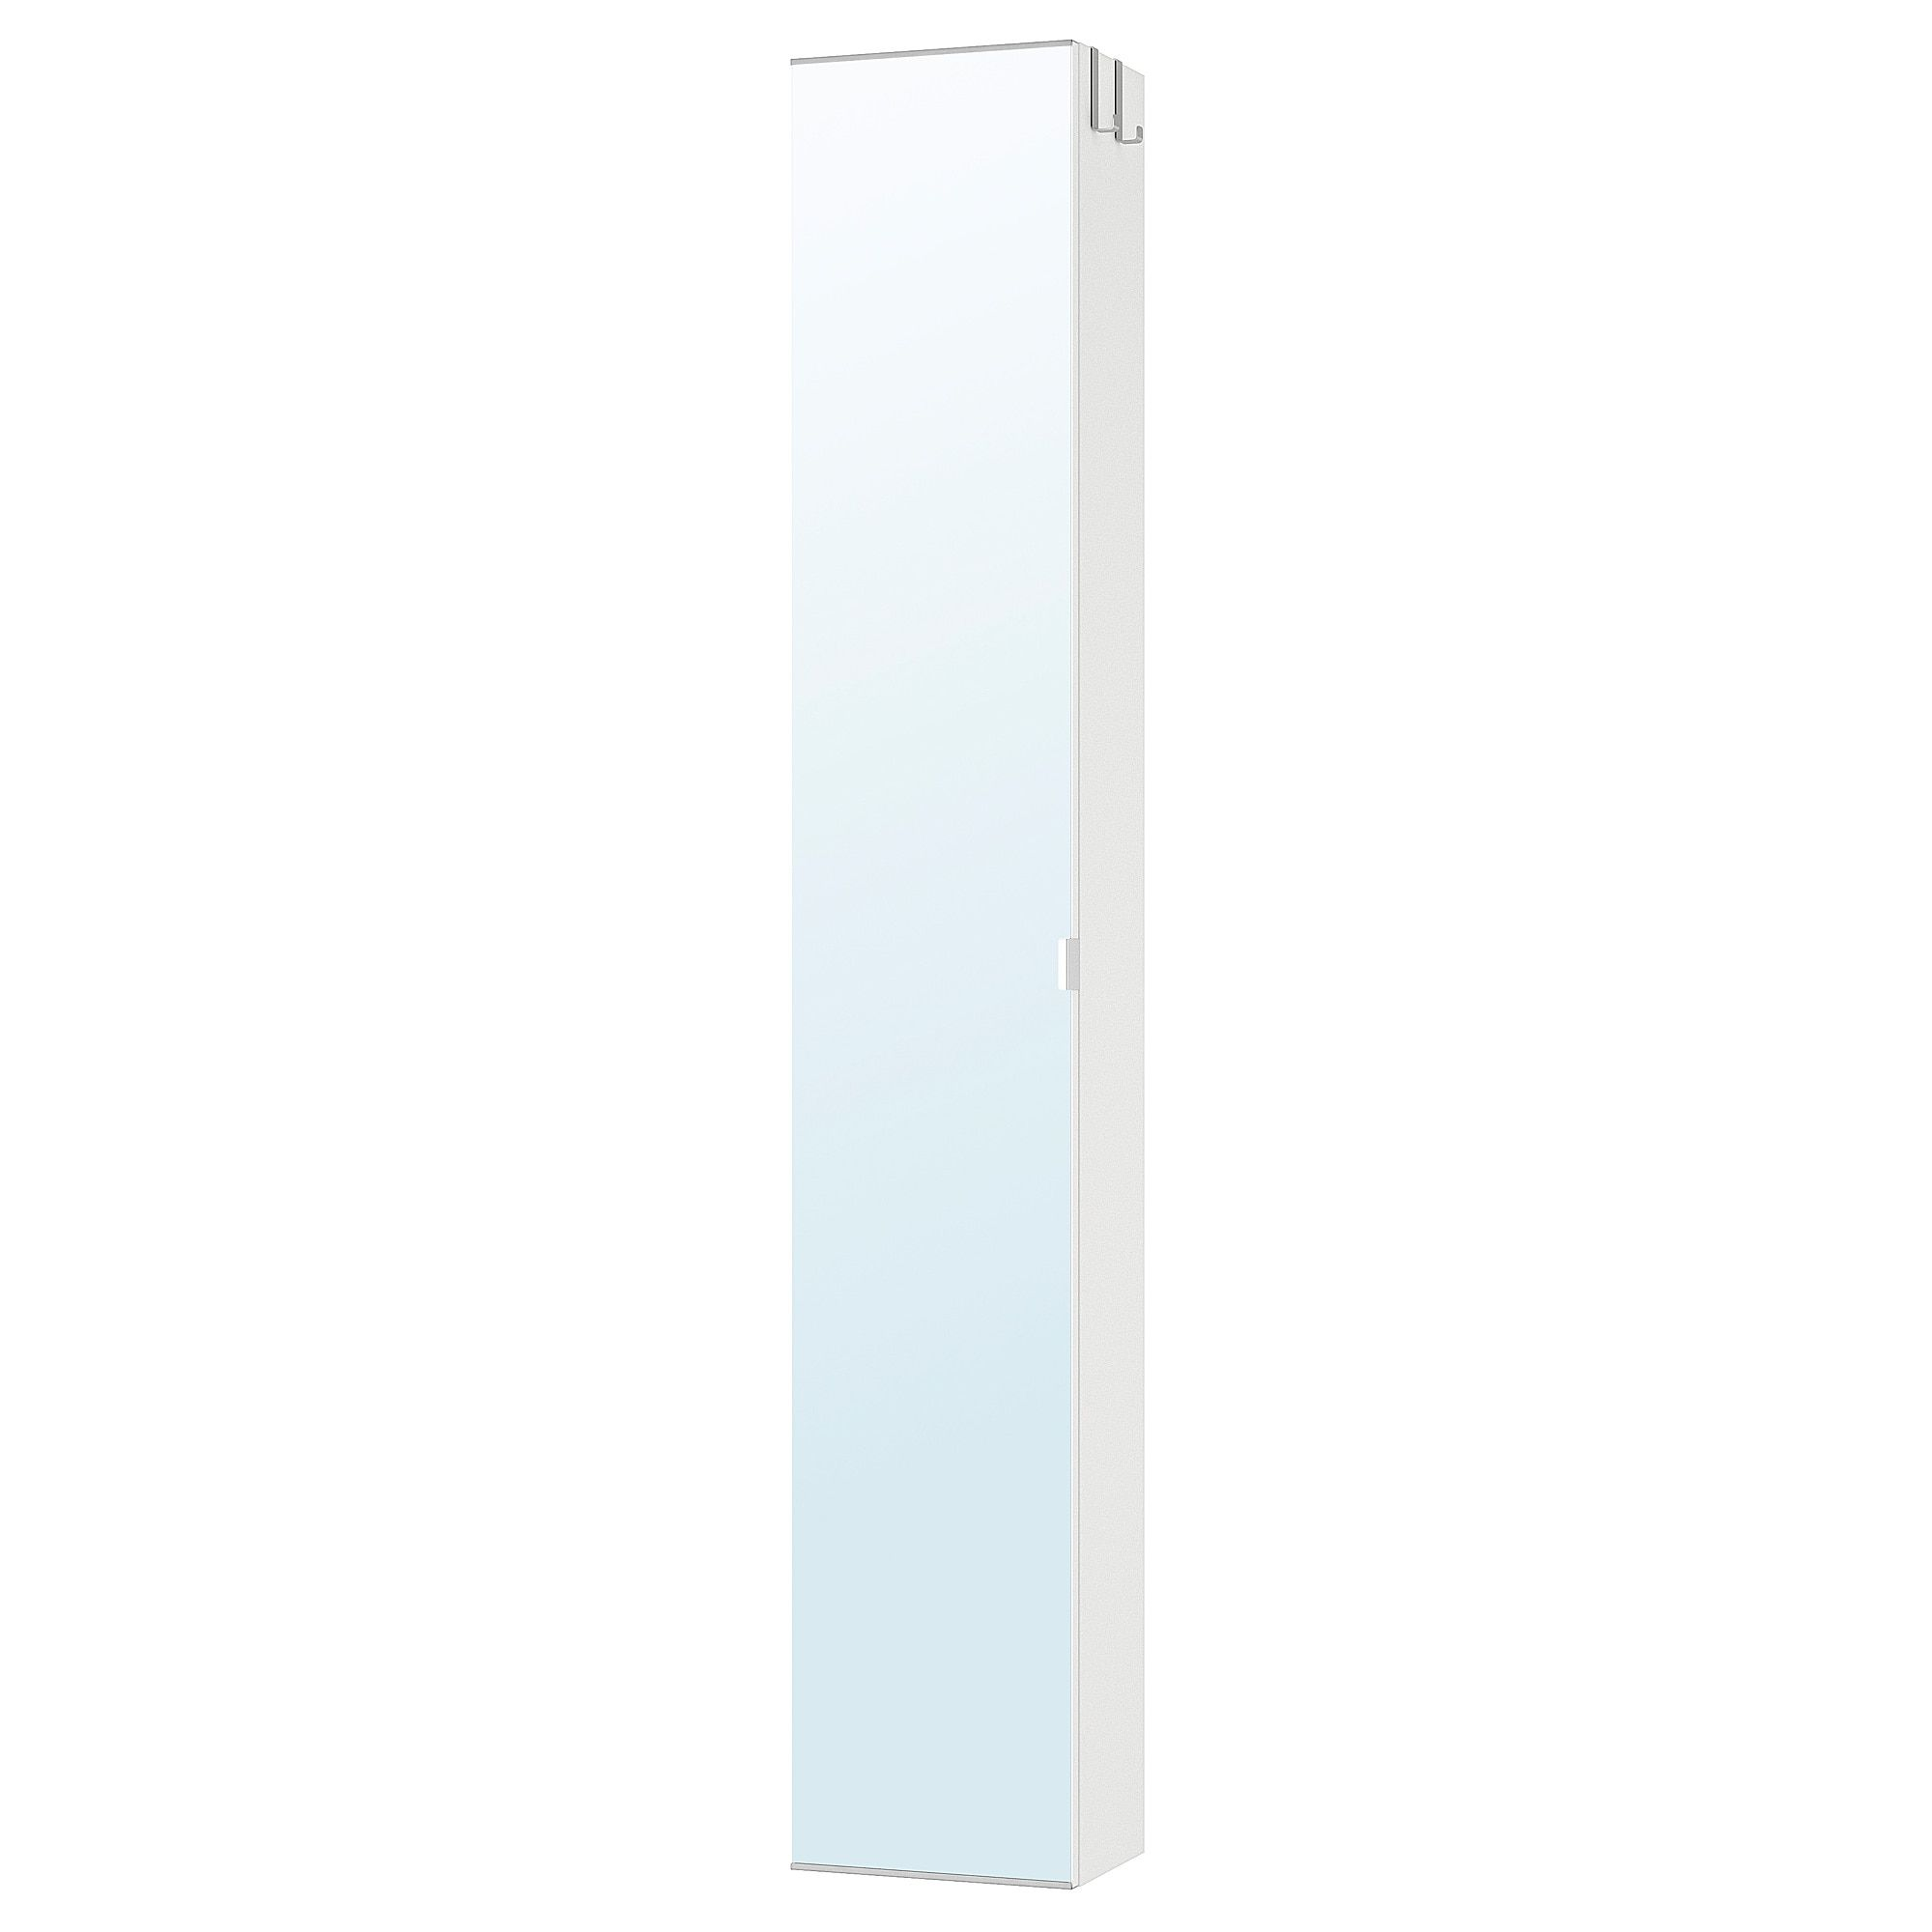 Lillangen High Cabinet With Mirror Door White 11 3 4x8 1 4x70 1 2 Mirror Door Mirror Cabinets Ikea